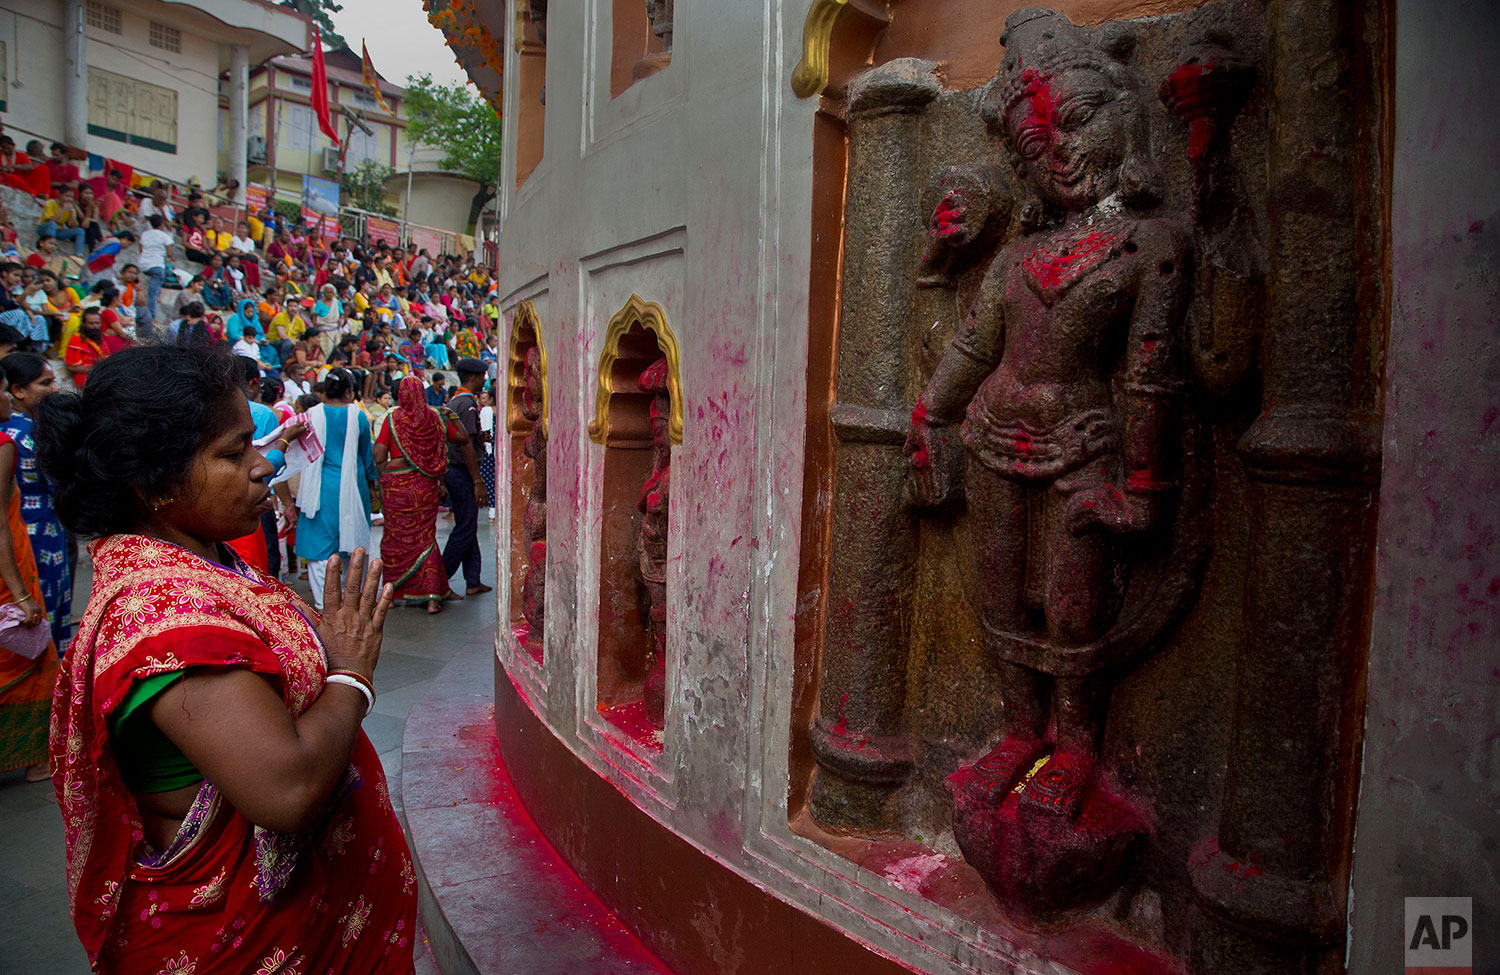 Monika Deb Nath, 45, offers prayers at the Kamakhya temple during the Ambubachi festival in Gauhati, India, June 25, 2019 . Monika, 45, and her husband have visited the Kamakhya temple four years in a row for the annual Ambubachi festival, praying for a miracle to heal their son from cerebral palsy, which has left him with almost no control over his own body. The temple is presided over by the goddess Kamakhya, the most important goddess of tantric worship, an esoteric form of Hinduism.(AP Photo/Anupam Nath)